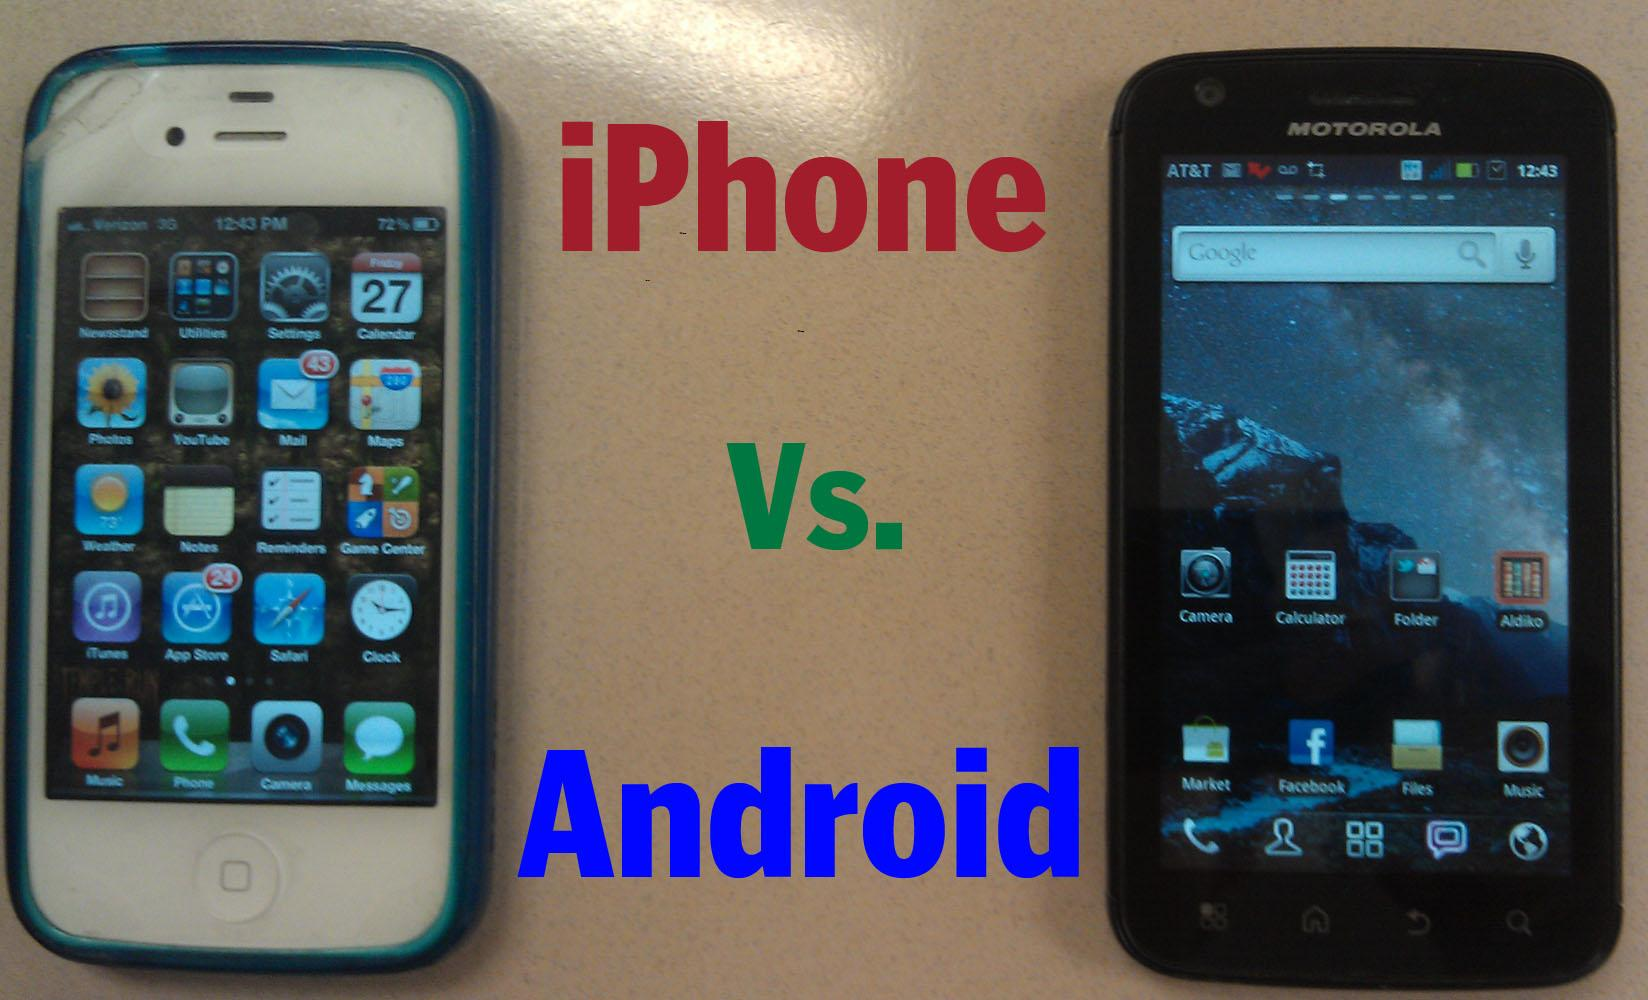 rage student review iphone vs android for